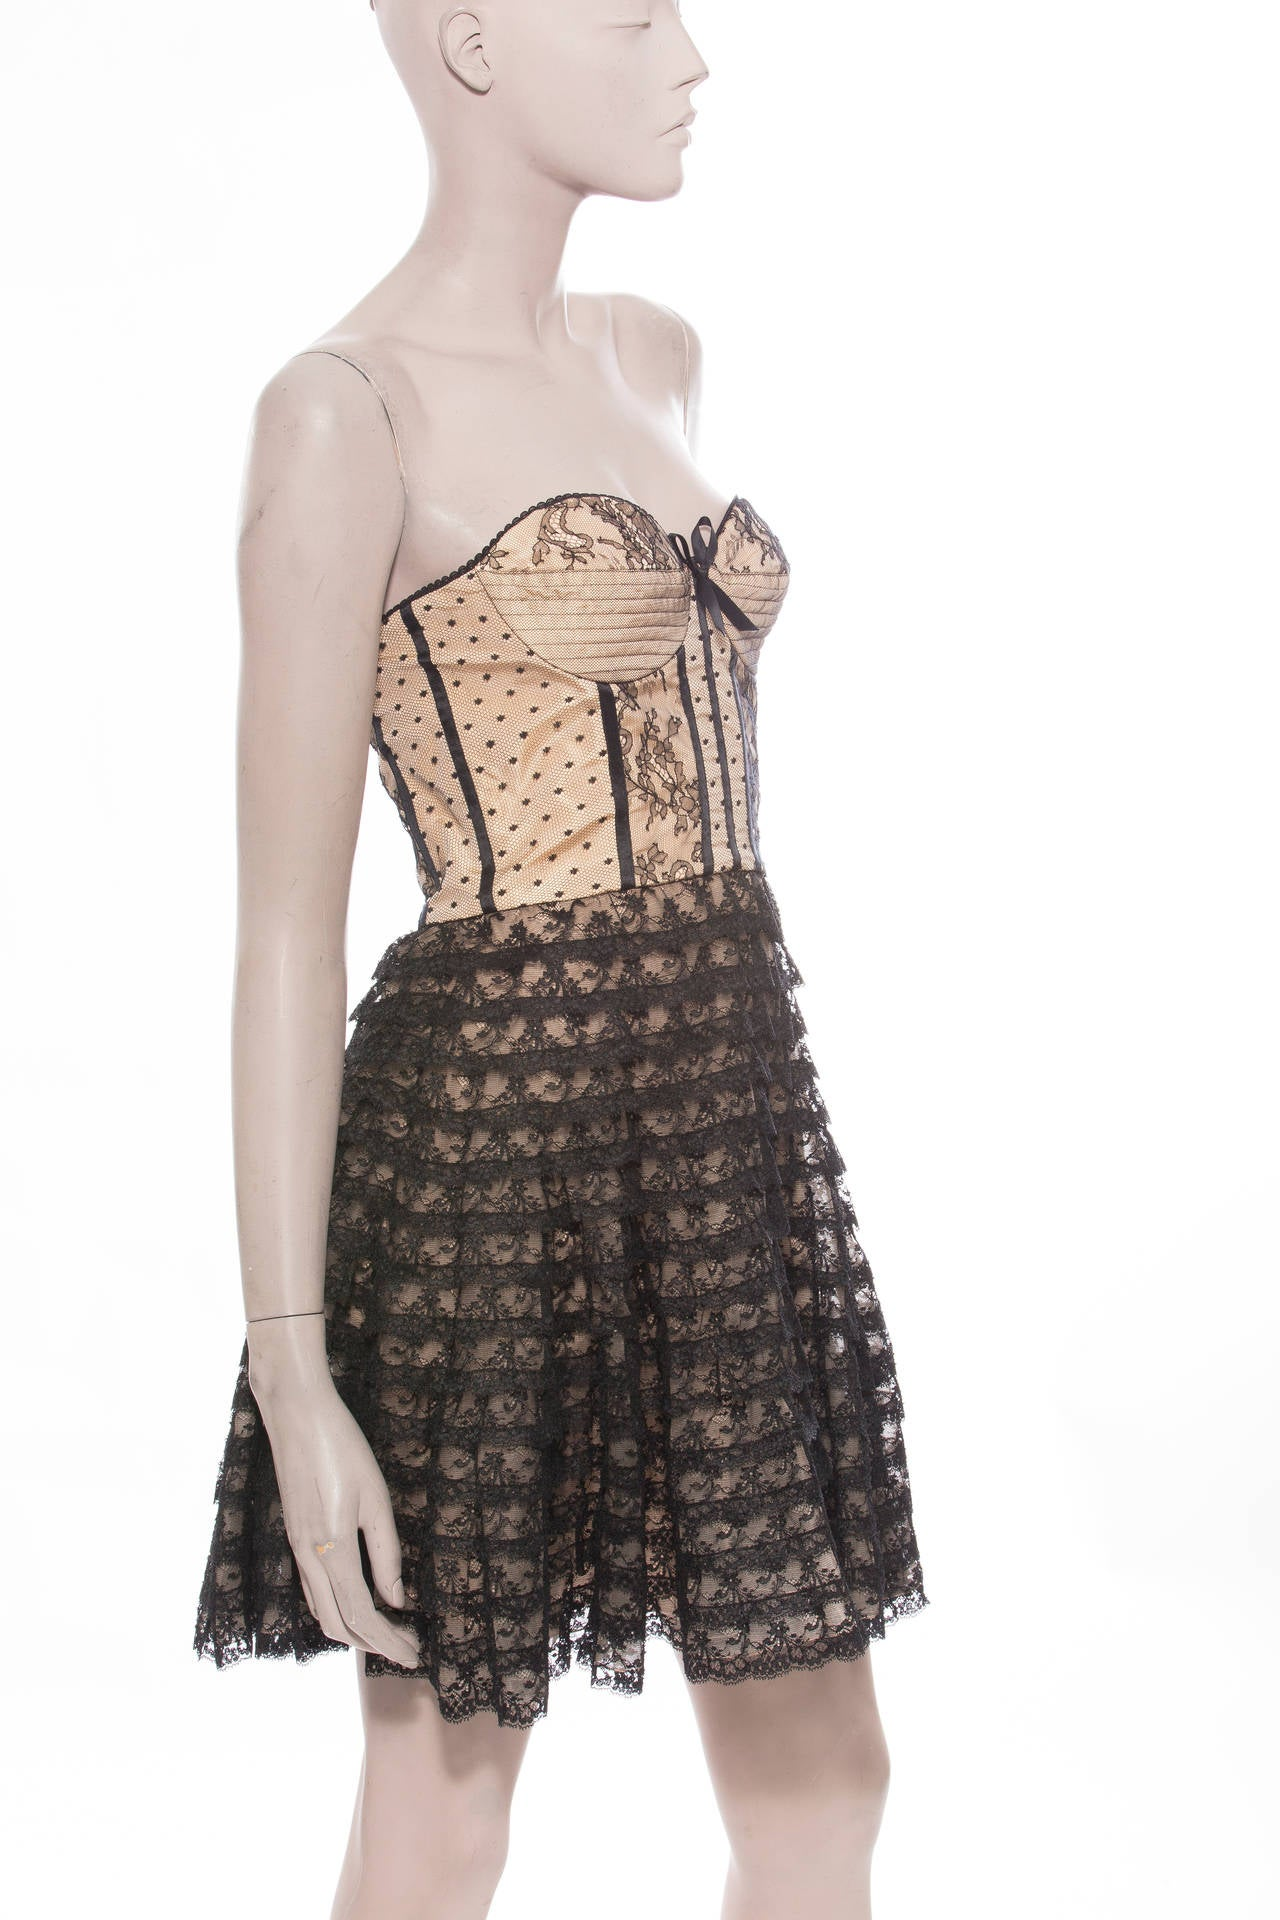 Christian Dior By John Galliano Strapless Lace Dress 2